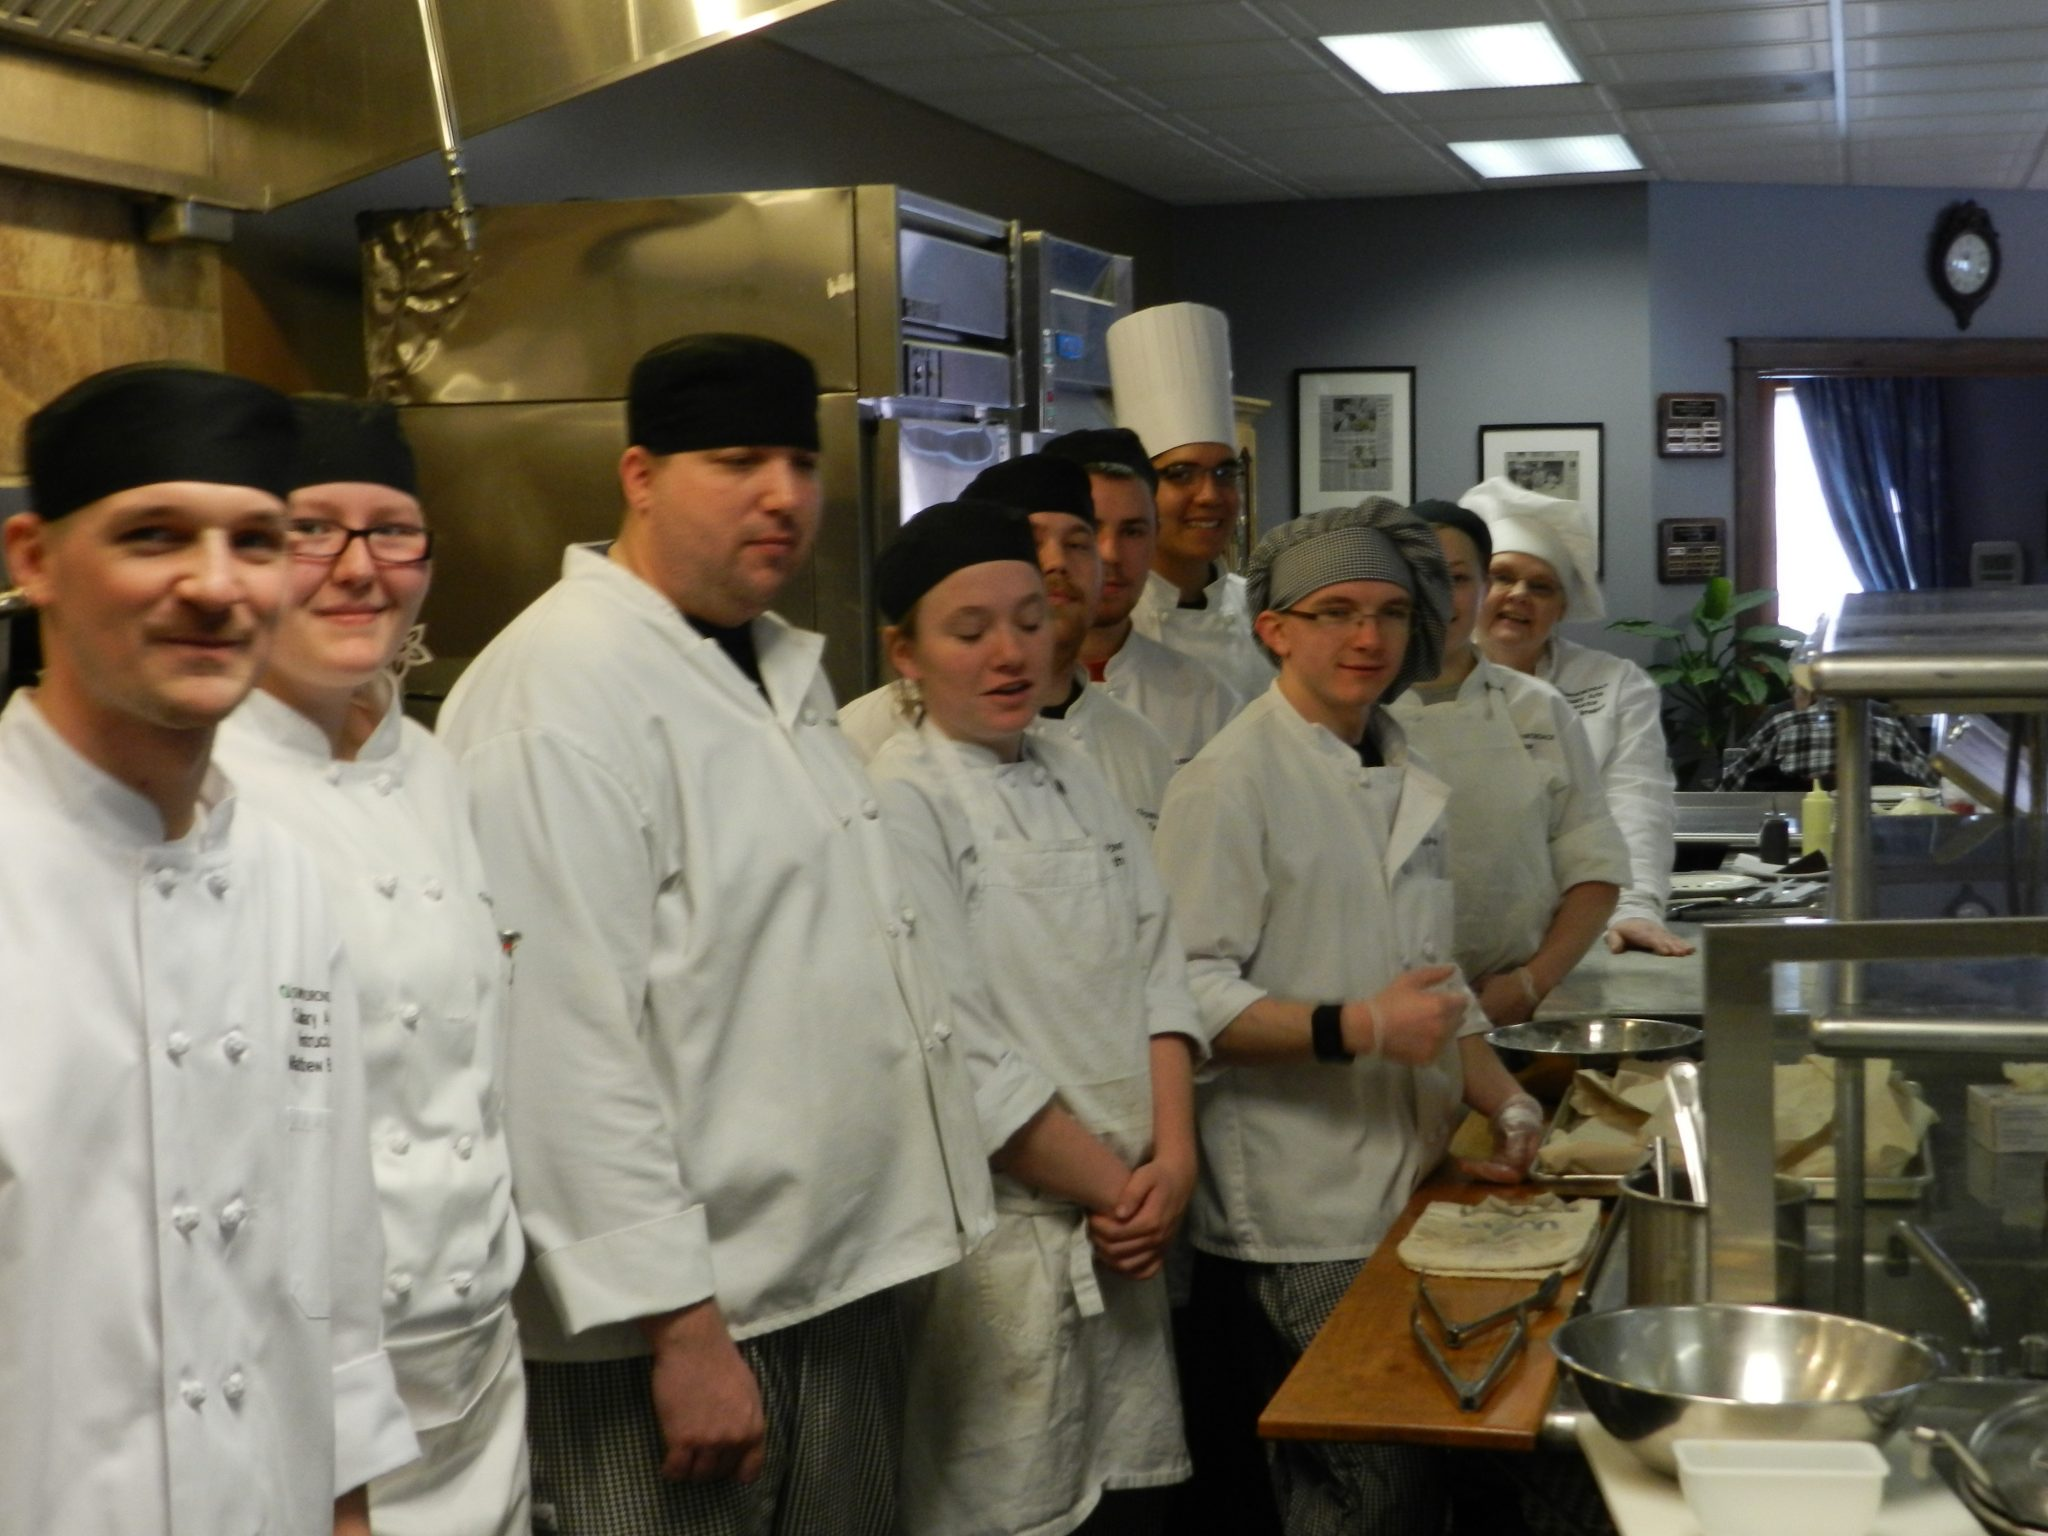 At SUNY Adirondack Local Chefs Mentor Future Pros